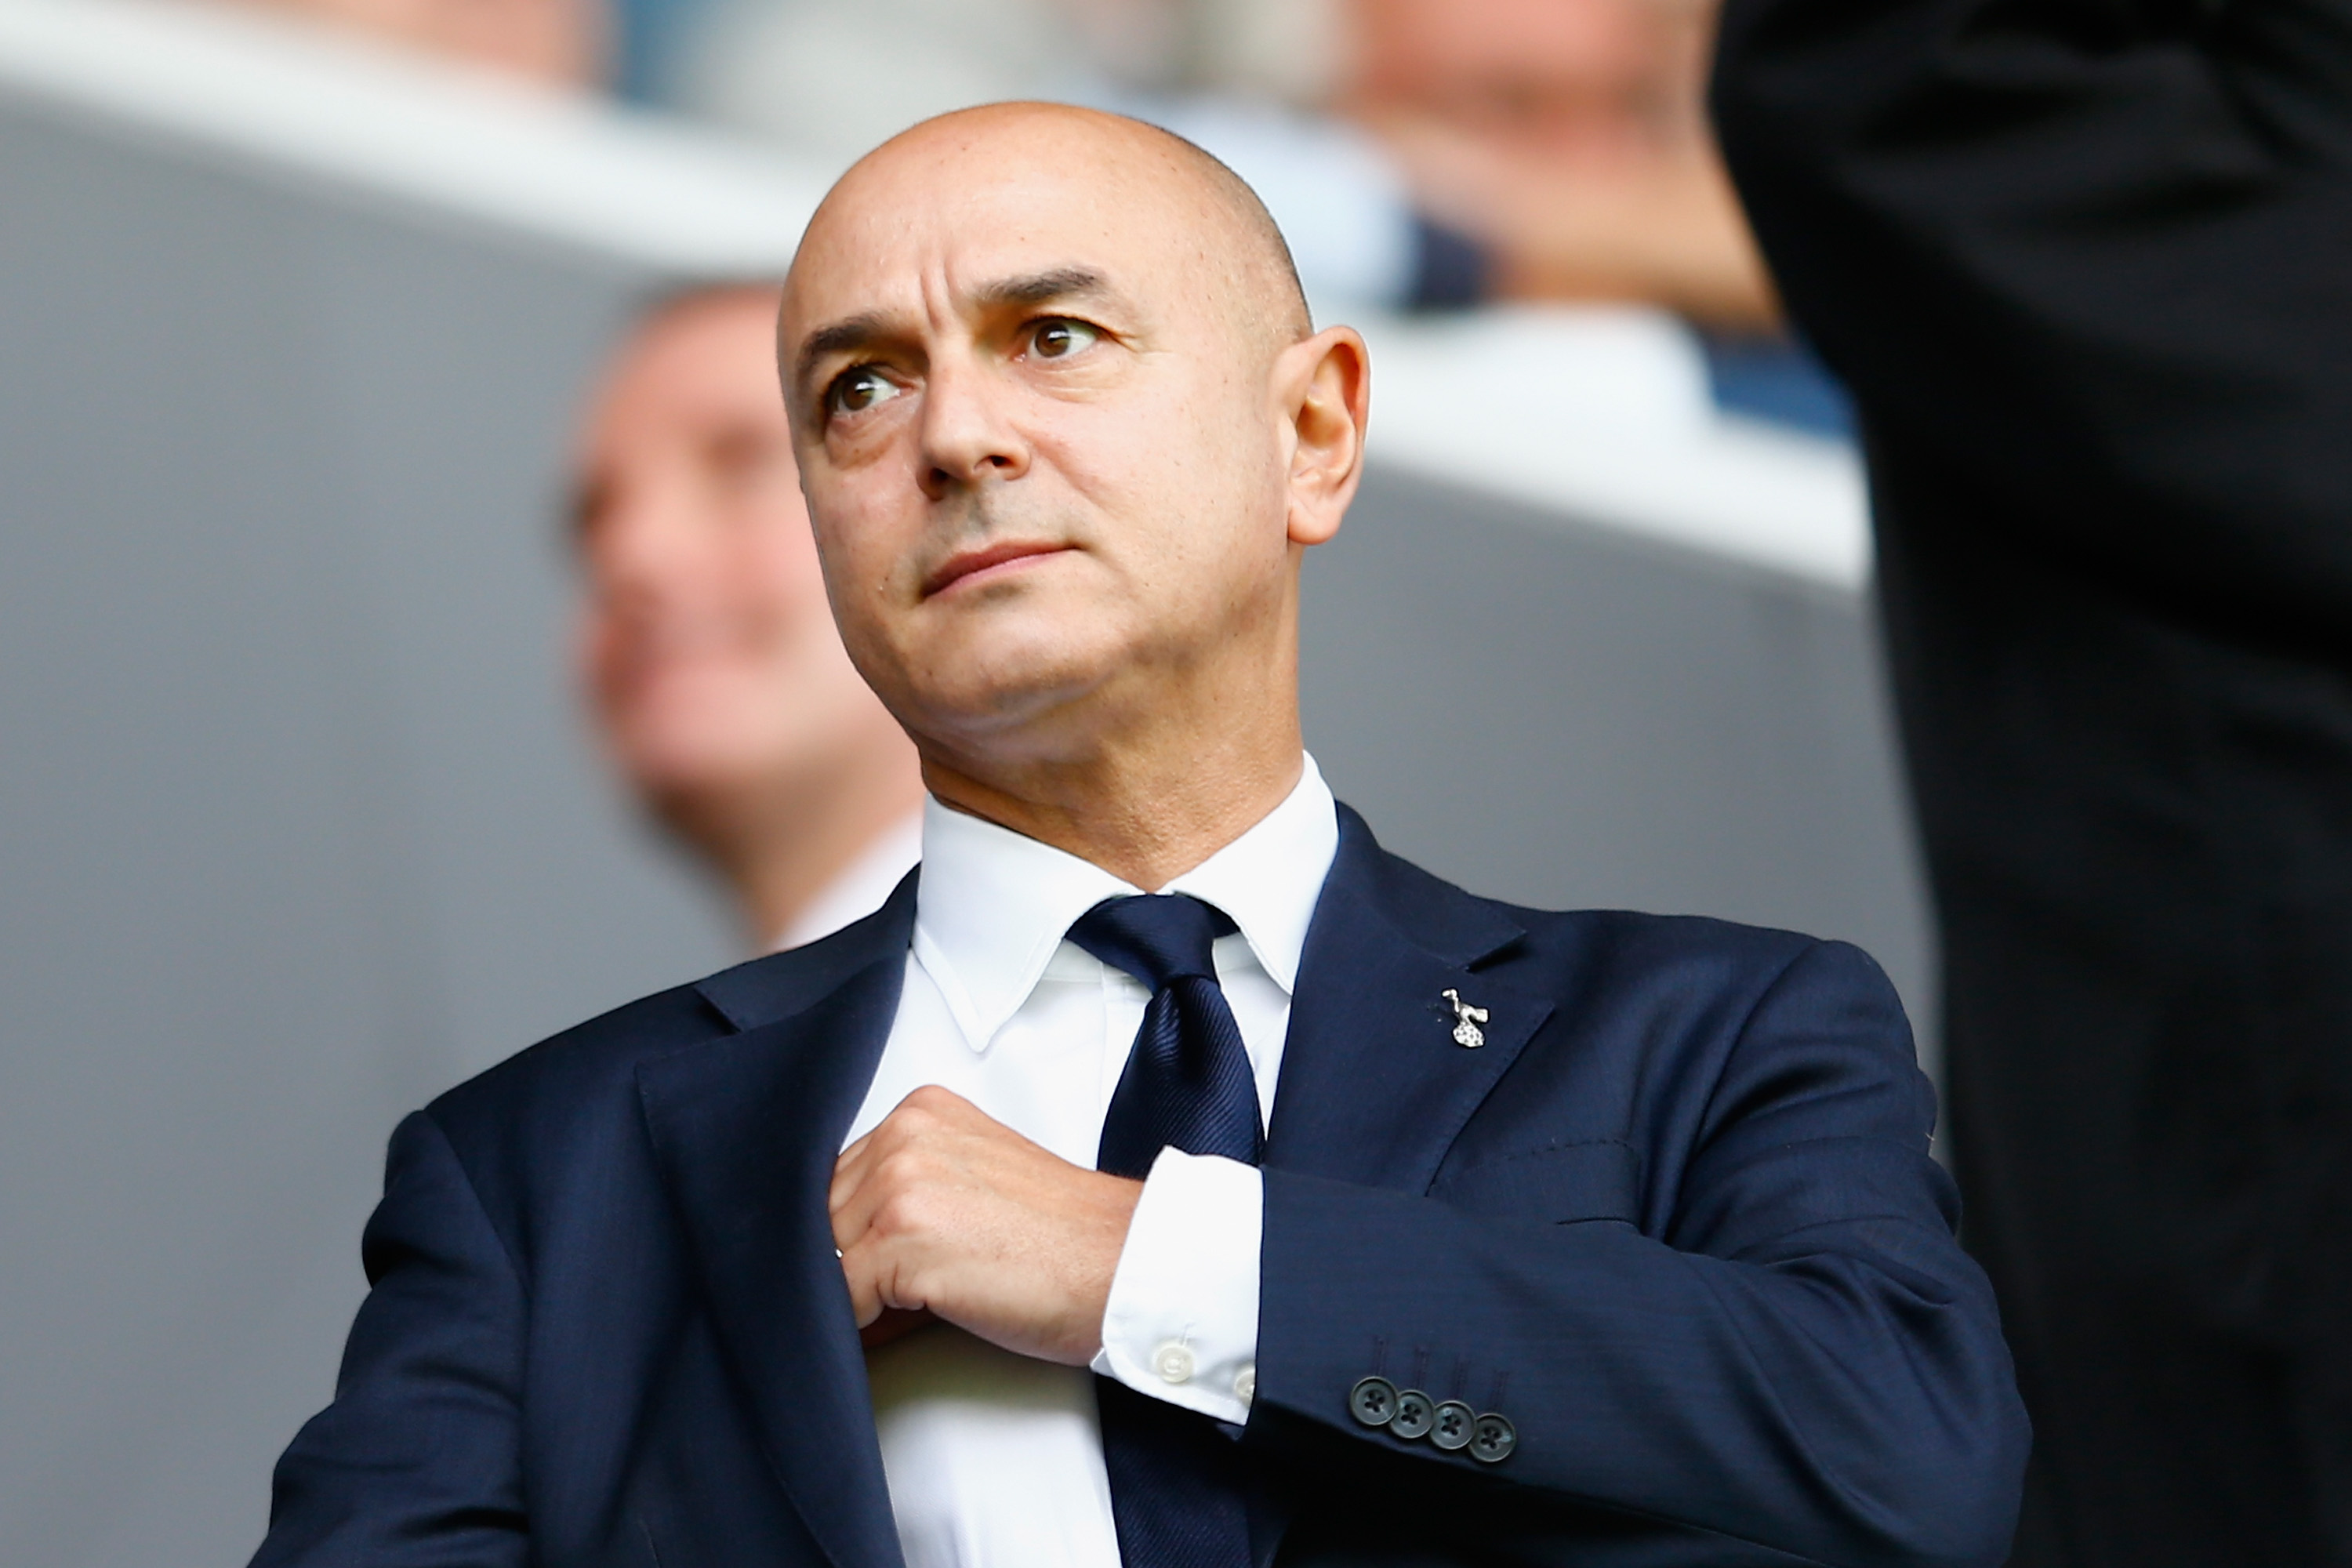 Recurrently Generated Tottenham Hotspur, Part One: Blowing it All Up